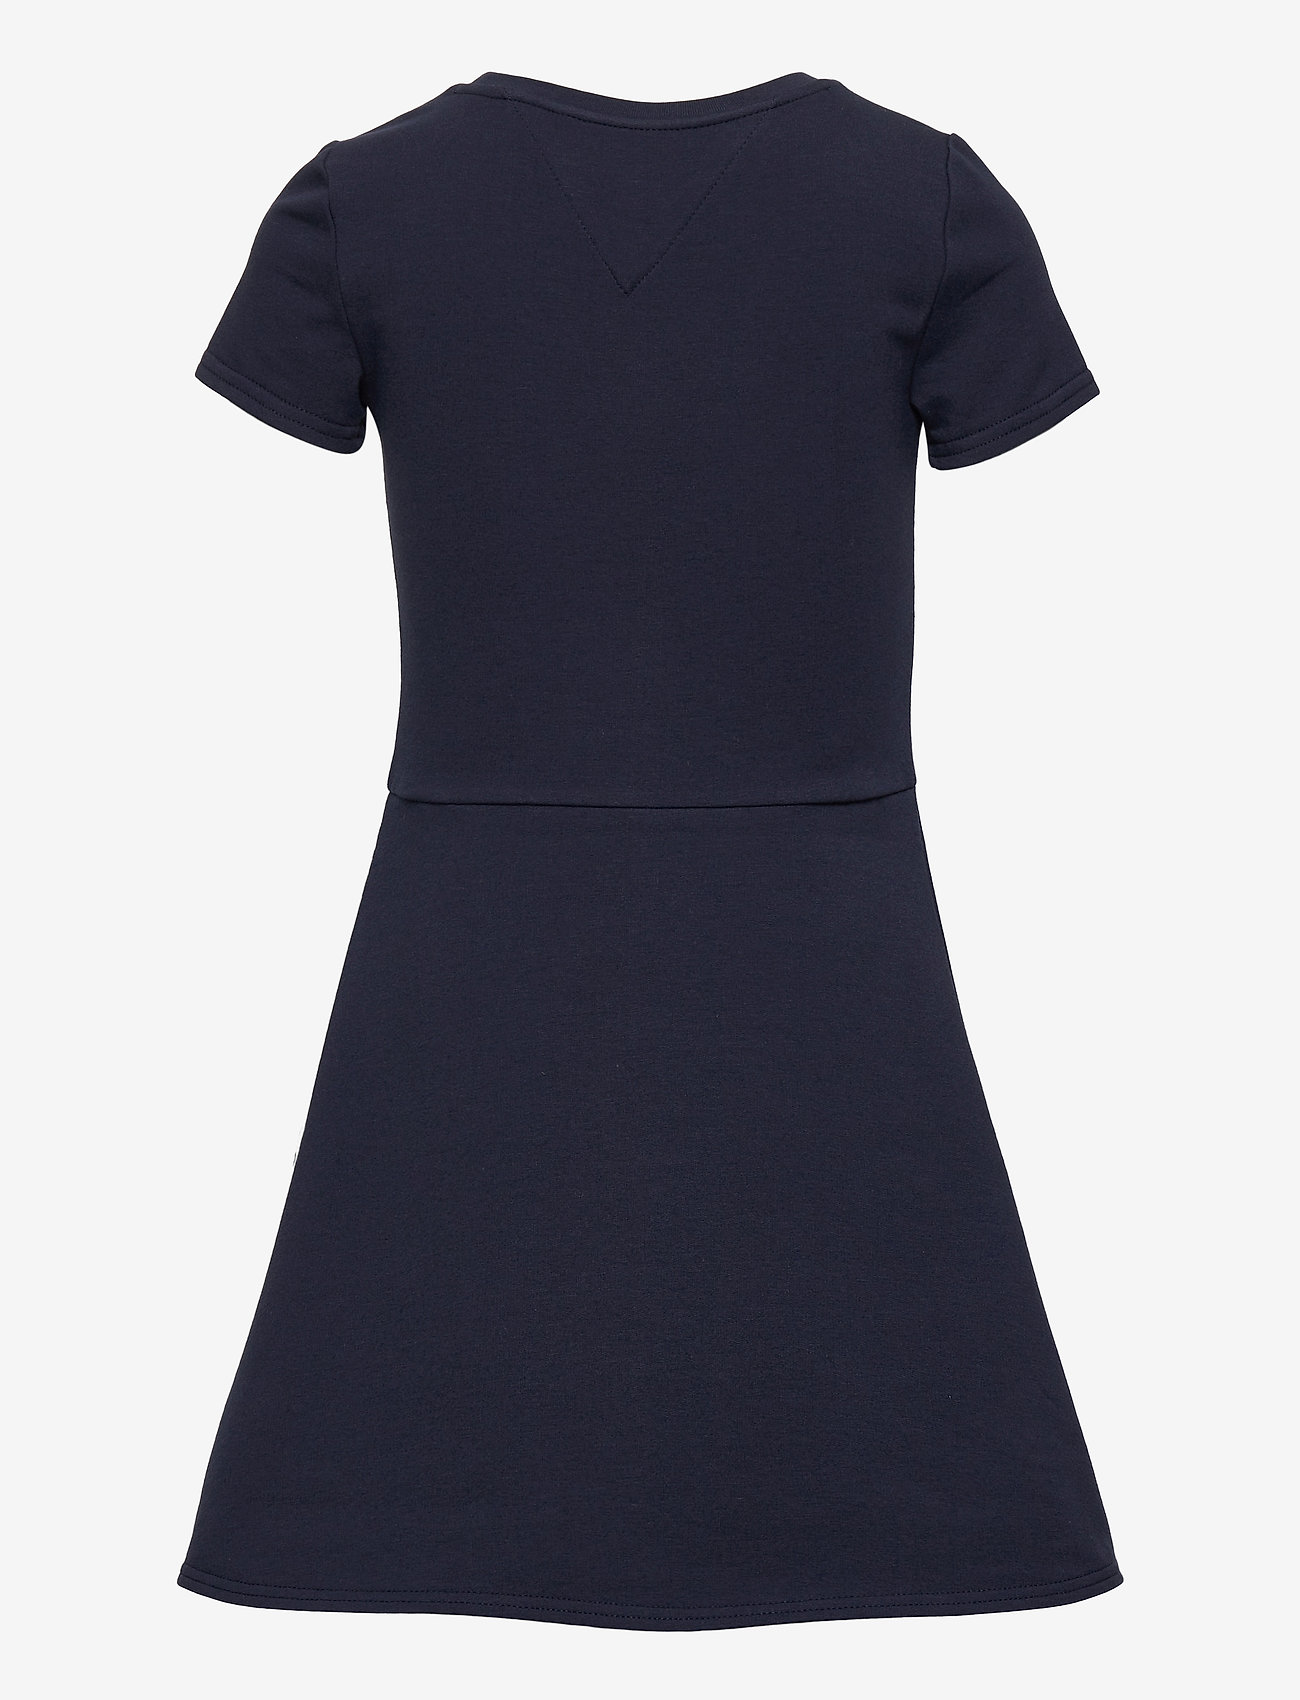 Tommy Hilfiger - ESSENTIAL  SKATER DRESS S/S - kleider - twilight navy - 1